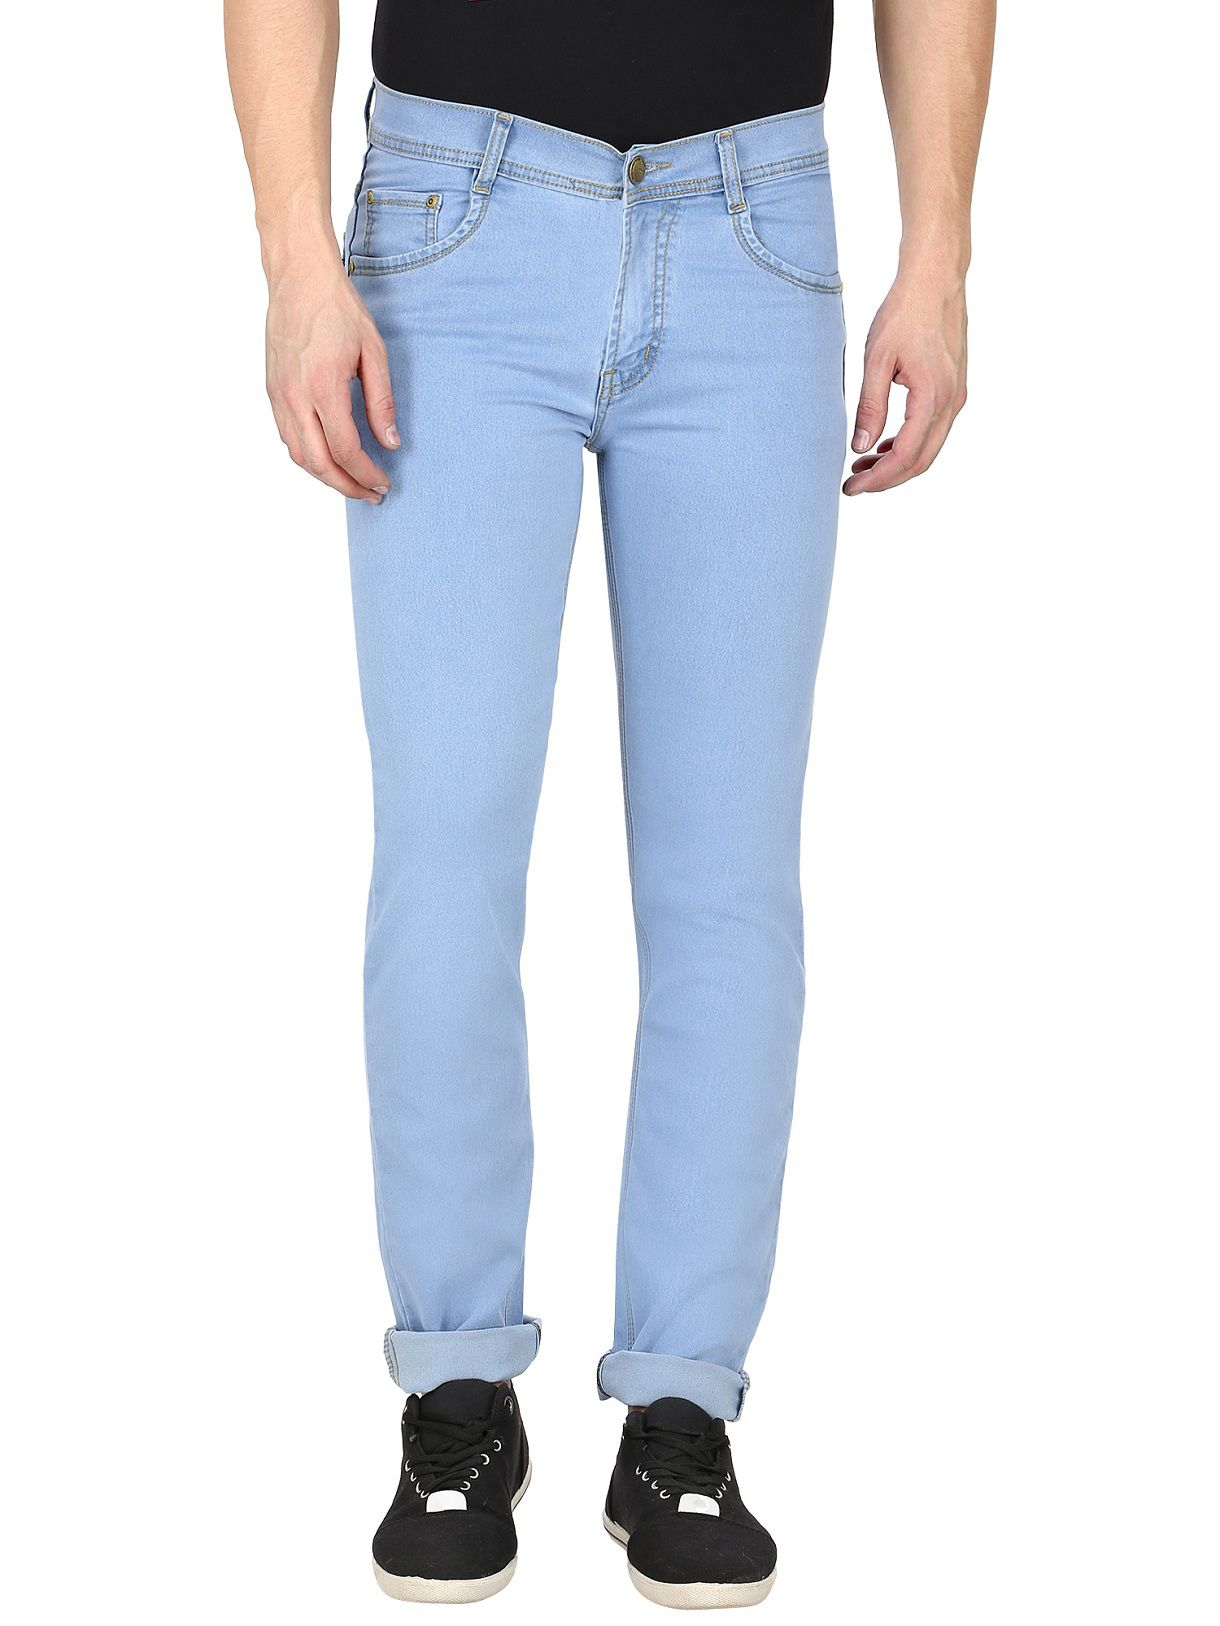 gradely Light Blue Regular Fit Jeans